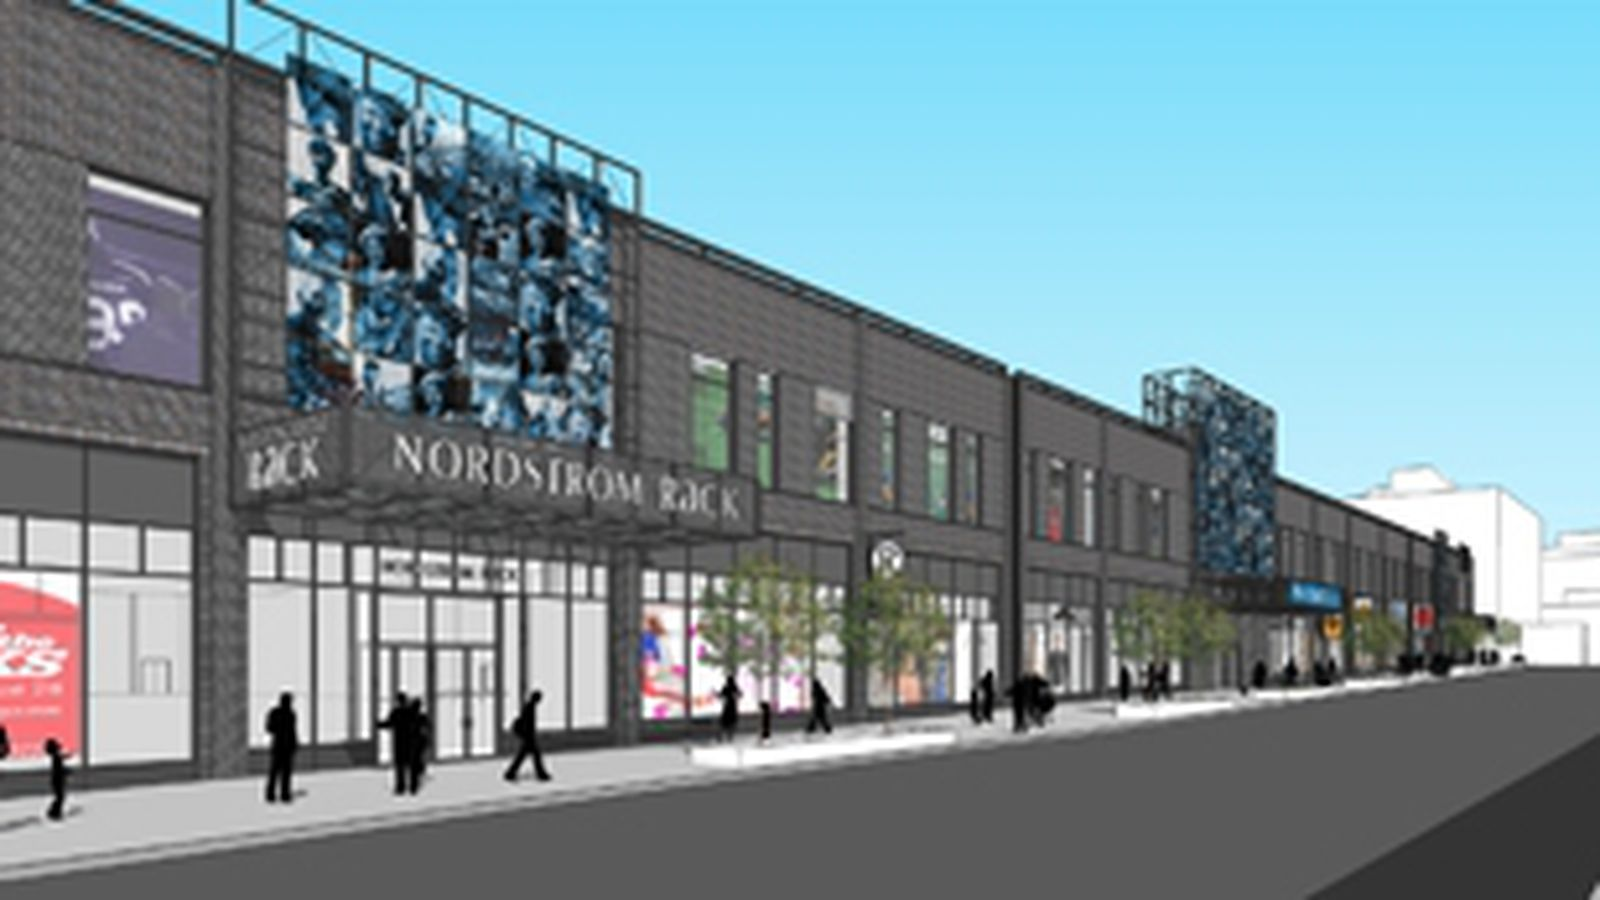 Chicagos Eighth Nordstrom Rack Coming To South Loop In